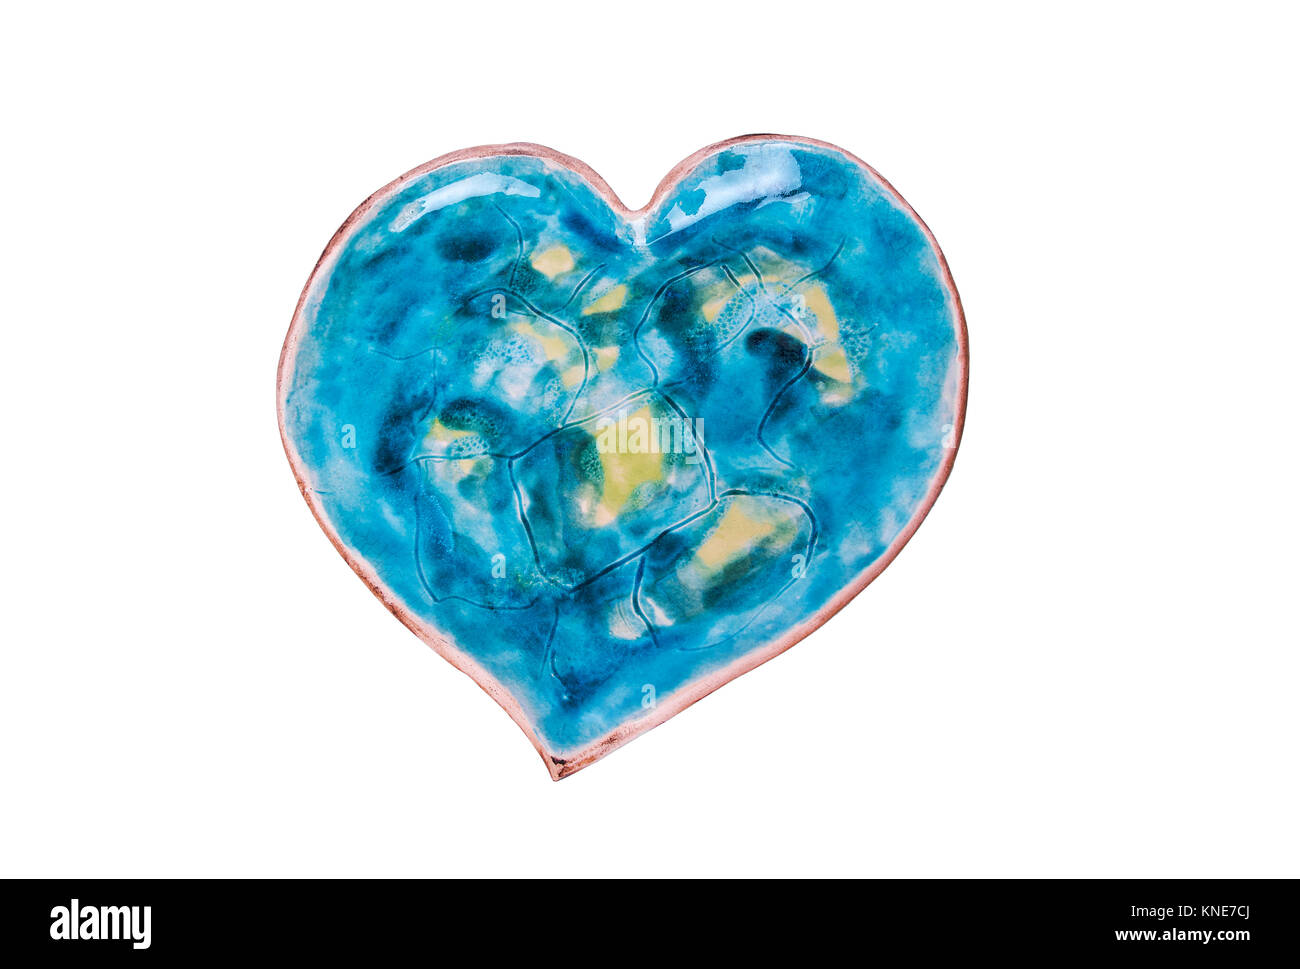 Saucer in the shape of heart. - Stock Image